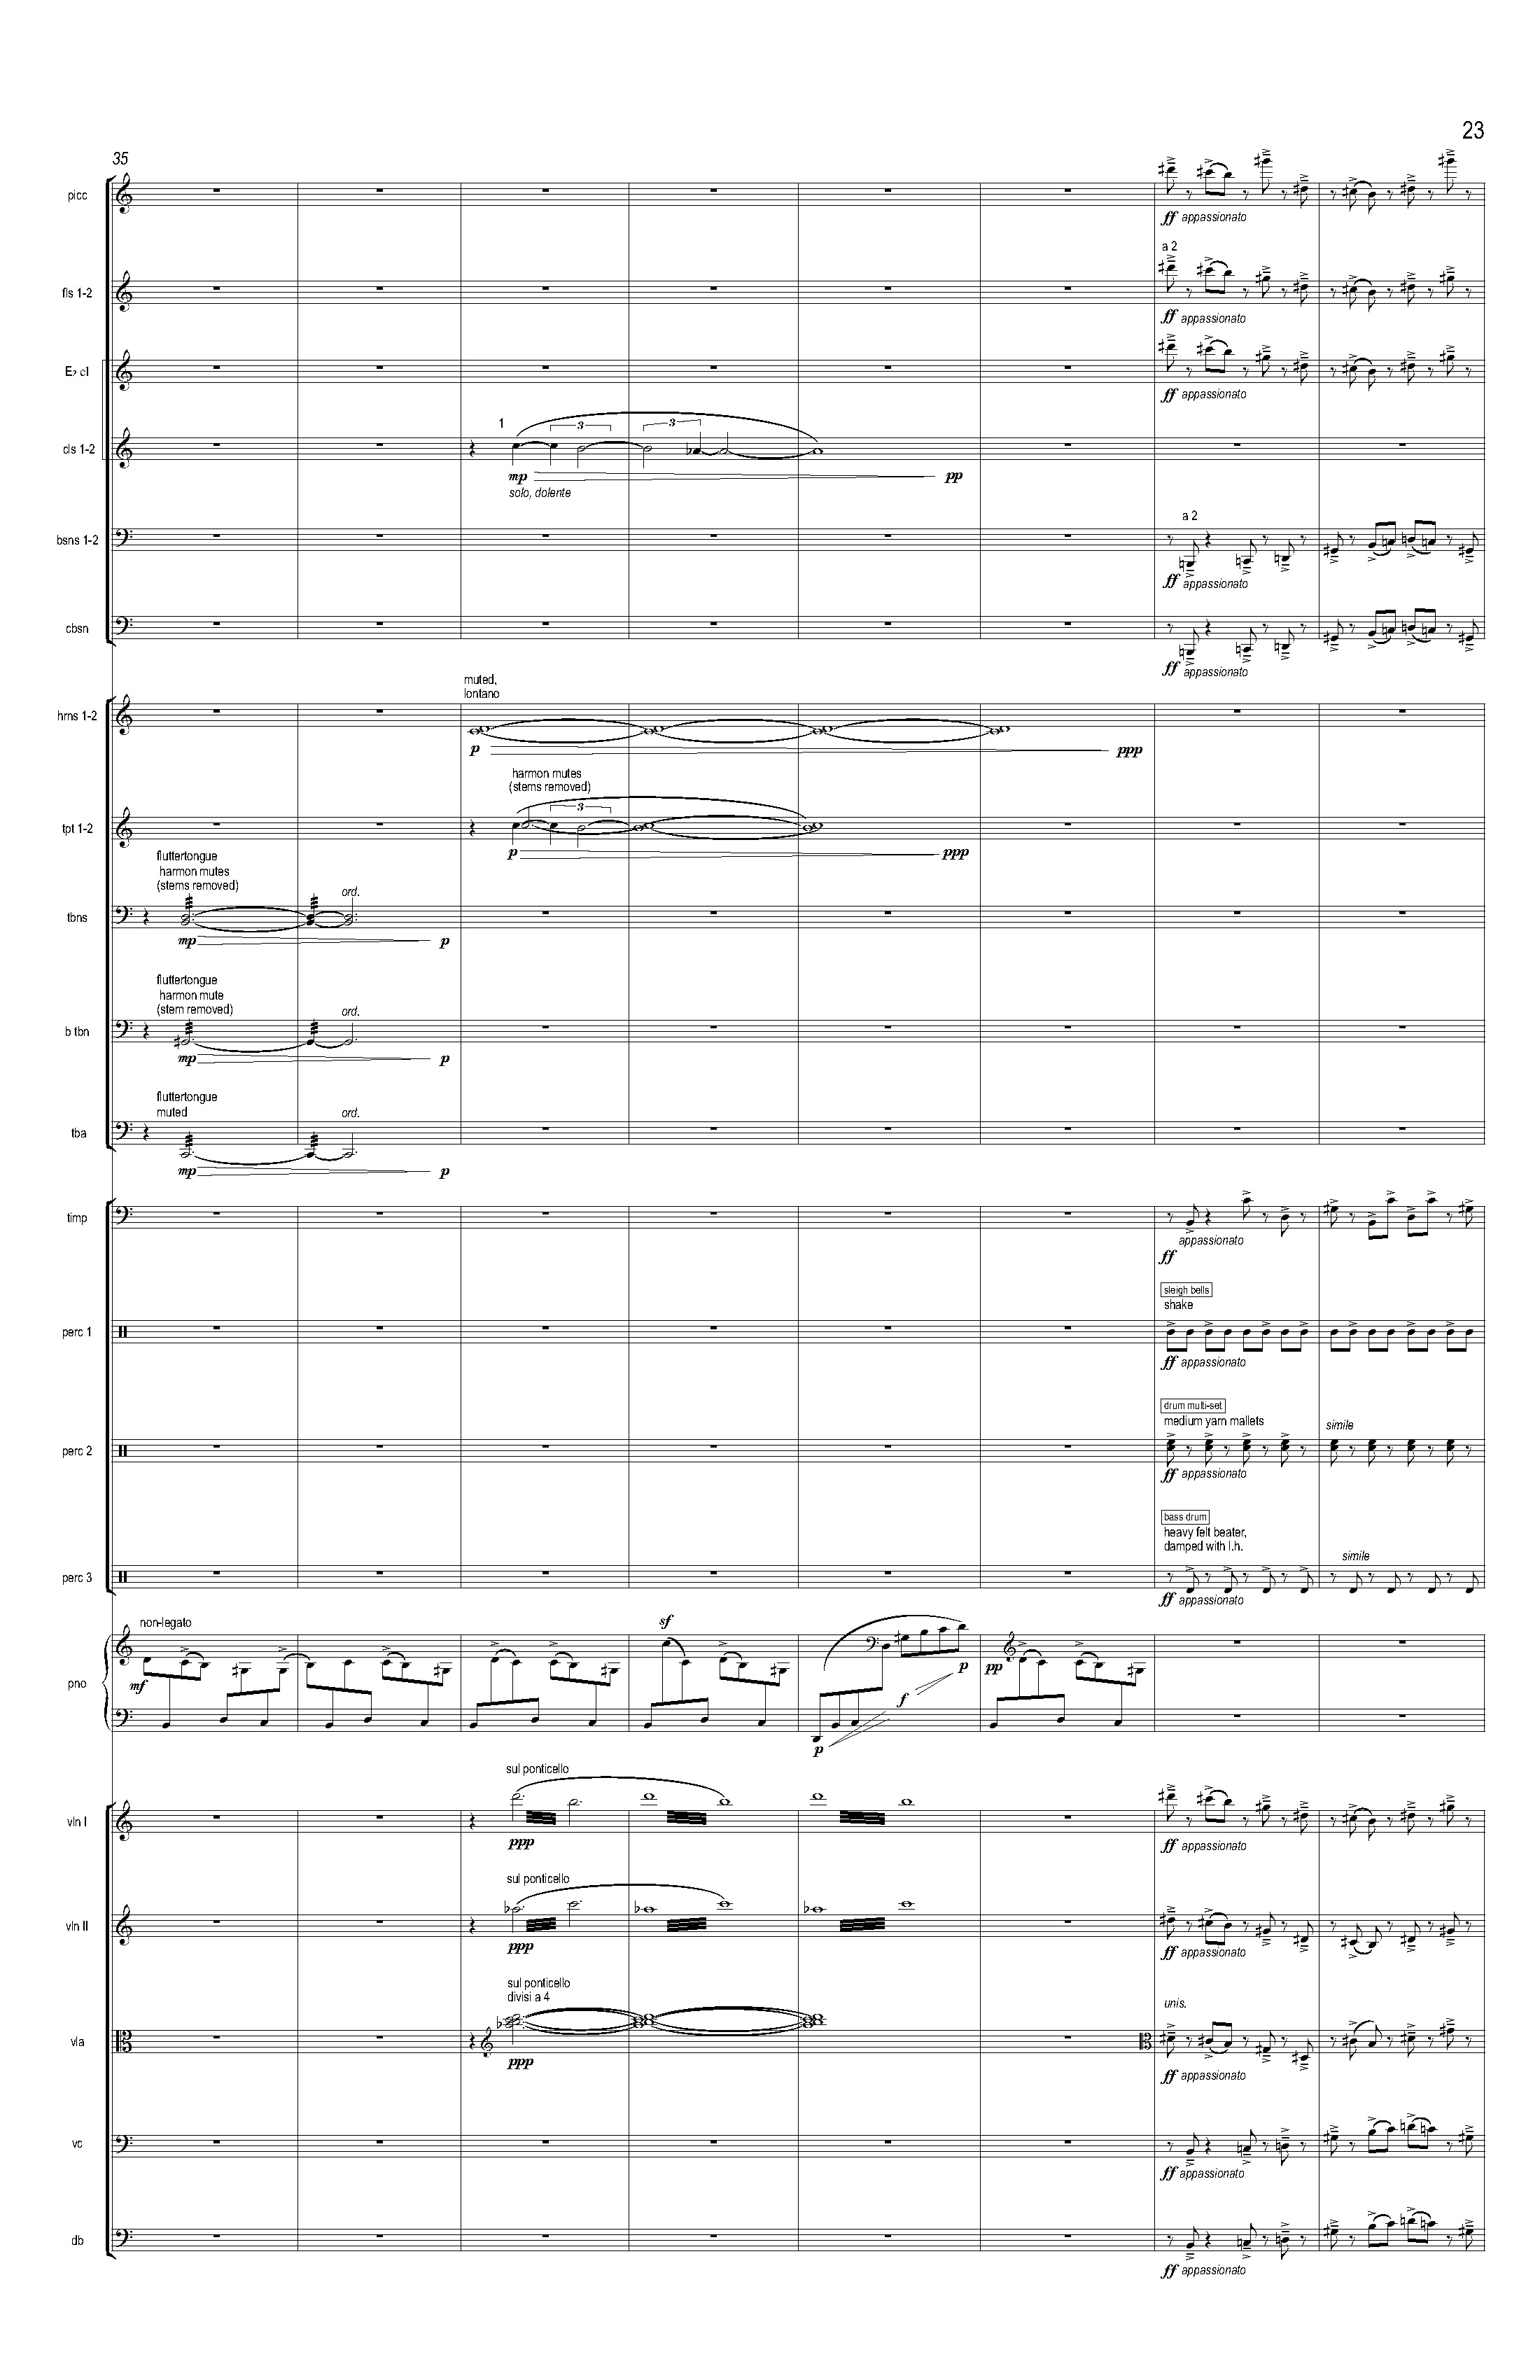 Ciach_Collective Uncommon REVISED_Full Score (Feb 2017)_Seite_29.jpg